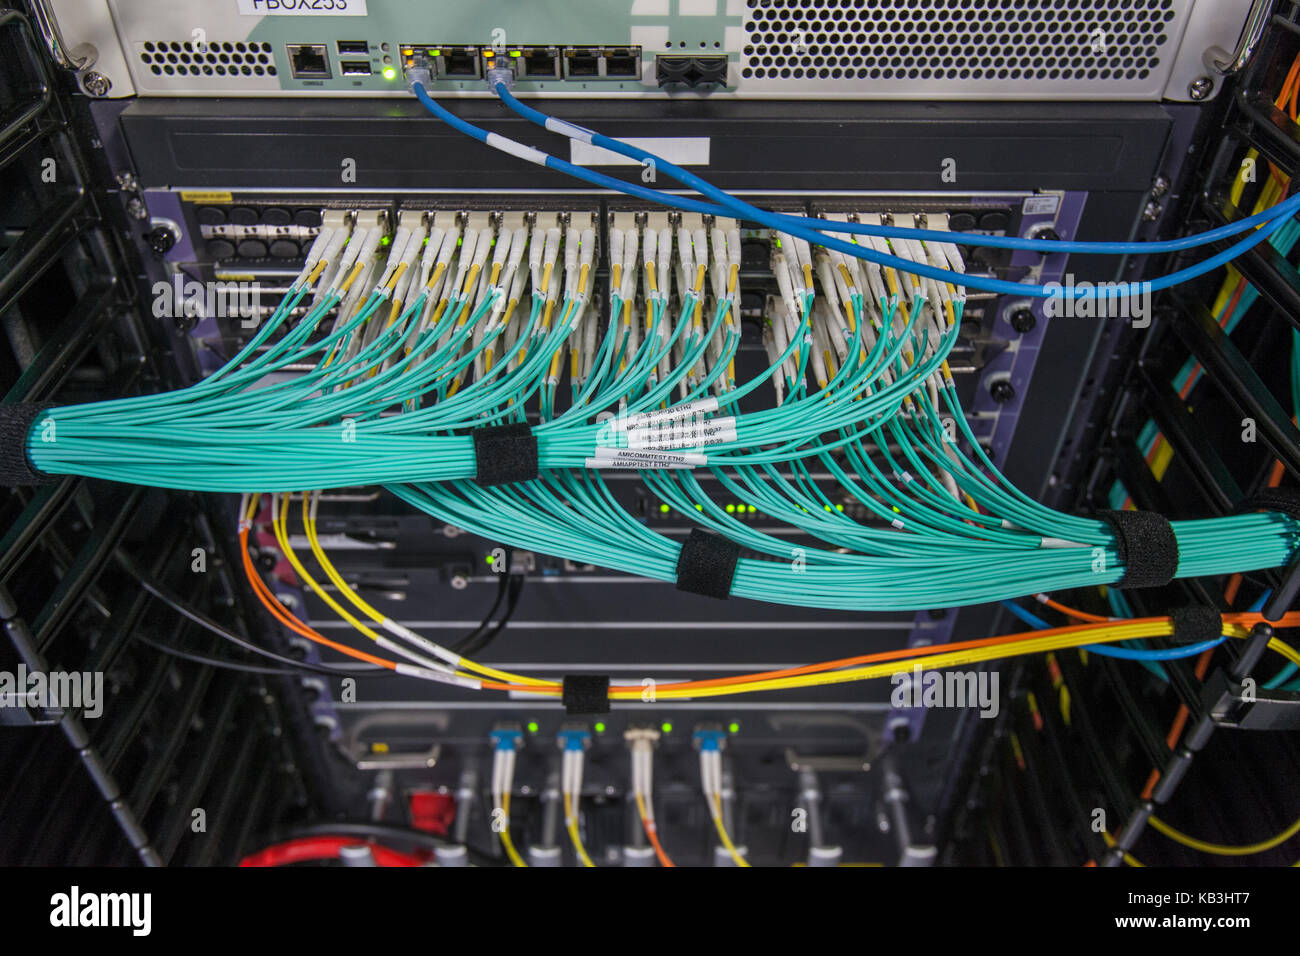 Structured Cabling Stock Photos Images Wiring Diagram Fiber Optic As Well Patch Panel For Fiberoptic Networks And Video In Communications Rack Image